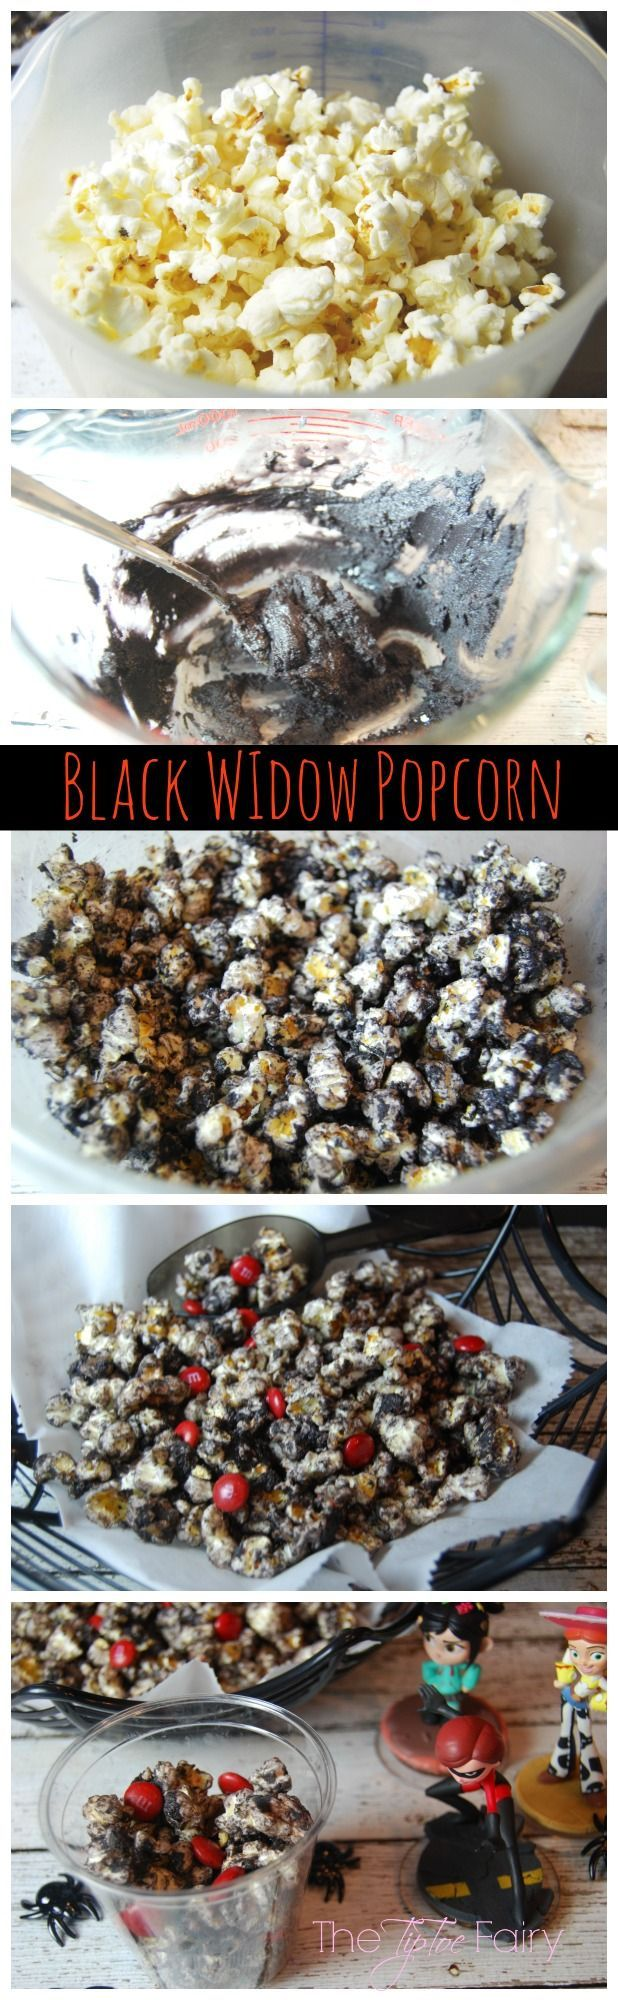 Black Widow Popcorn - made with chocolate cake batter for a yummy treat! Perfect for that Avengers party!